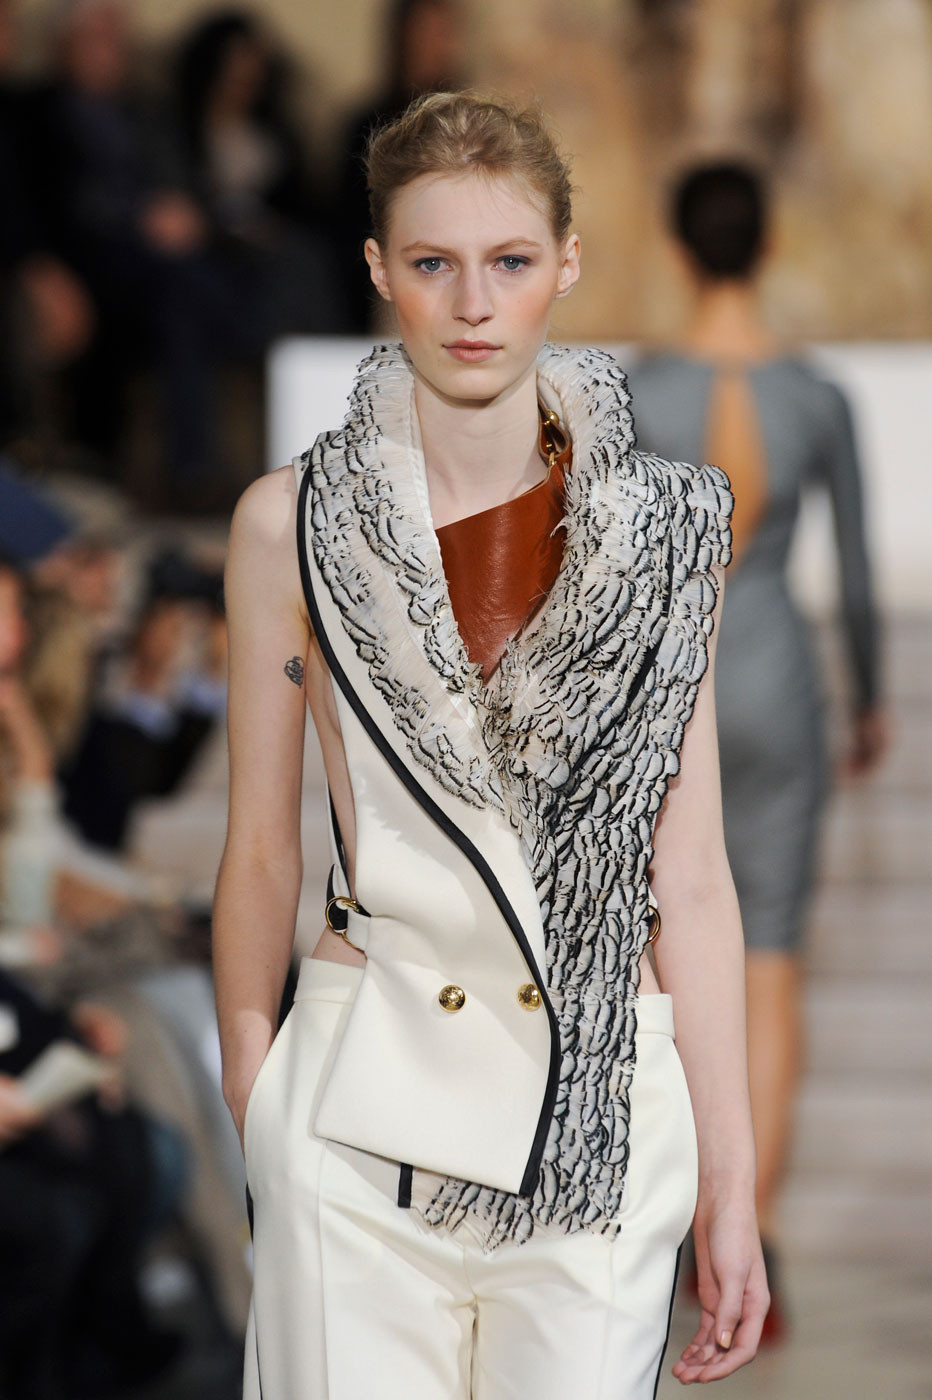 Bouchra Jarrar Haute Couture Spring-Summer 2012 / Lanvin new fashion designer via www.fashionedbylove.co.uk